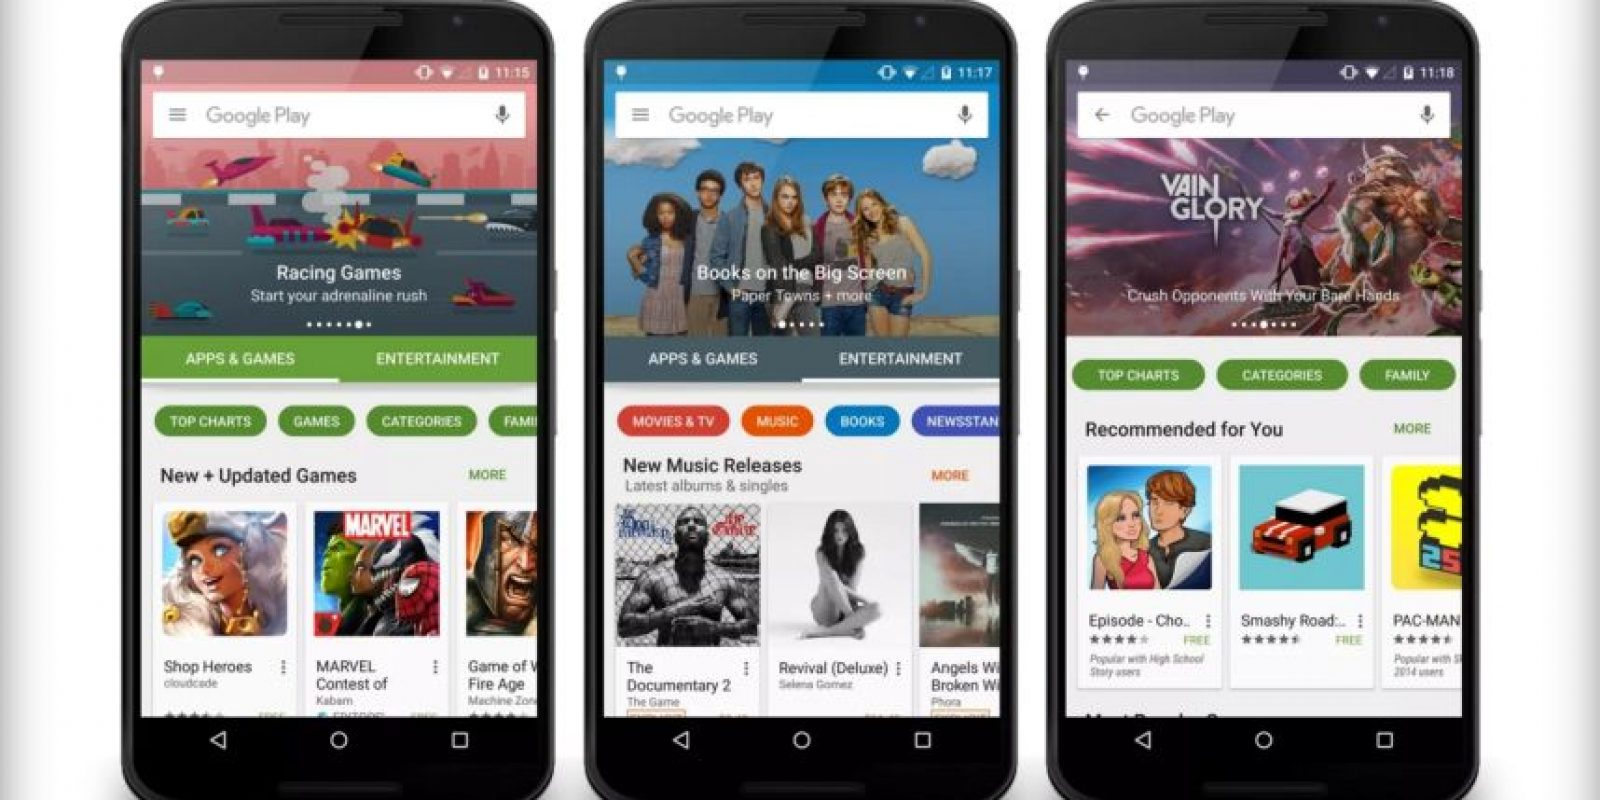 Google Play 5.0 estará disponible próximamente. Foto: vía plus.google.com/+KirillGrouchnikov